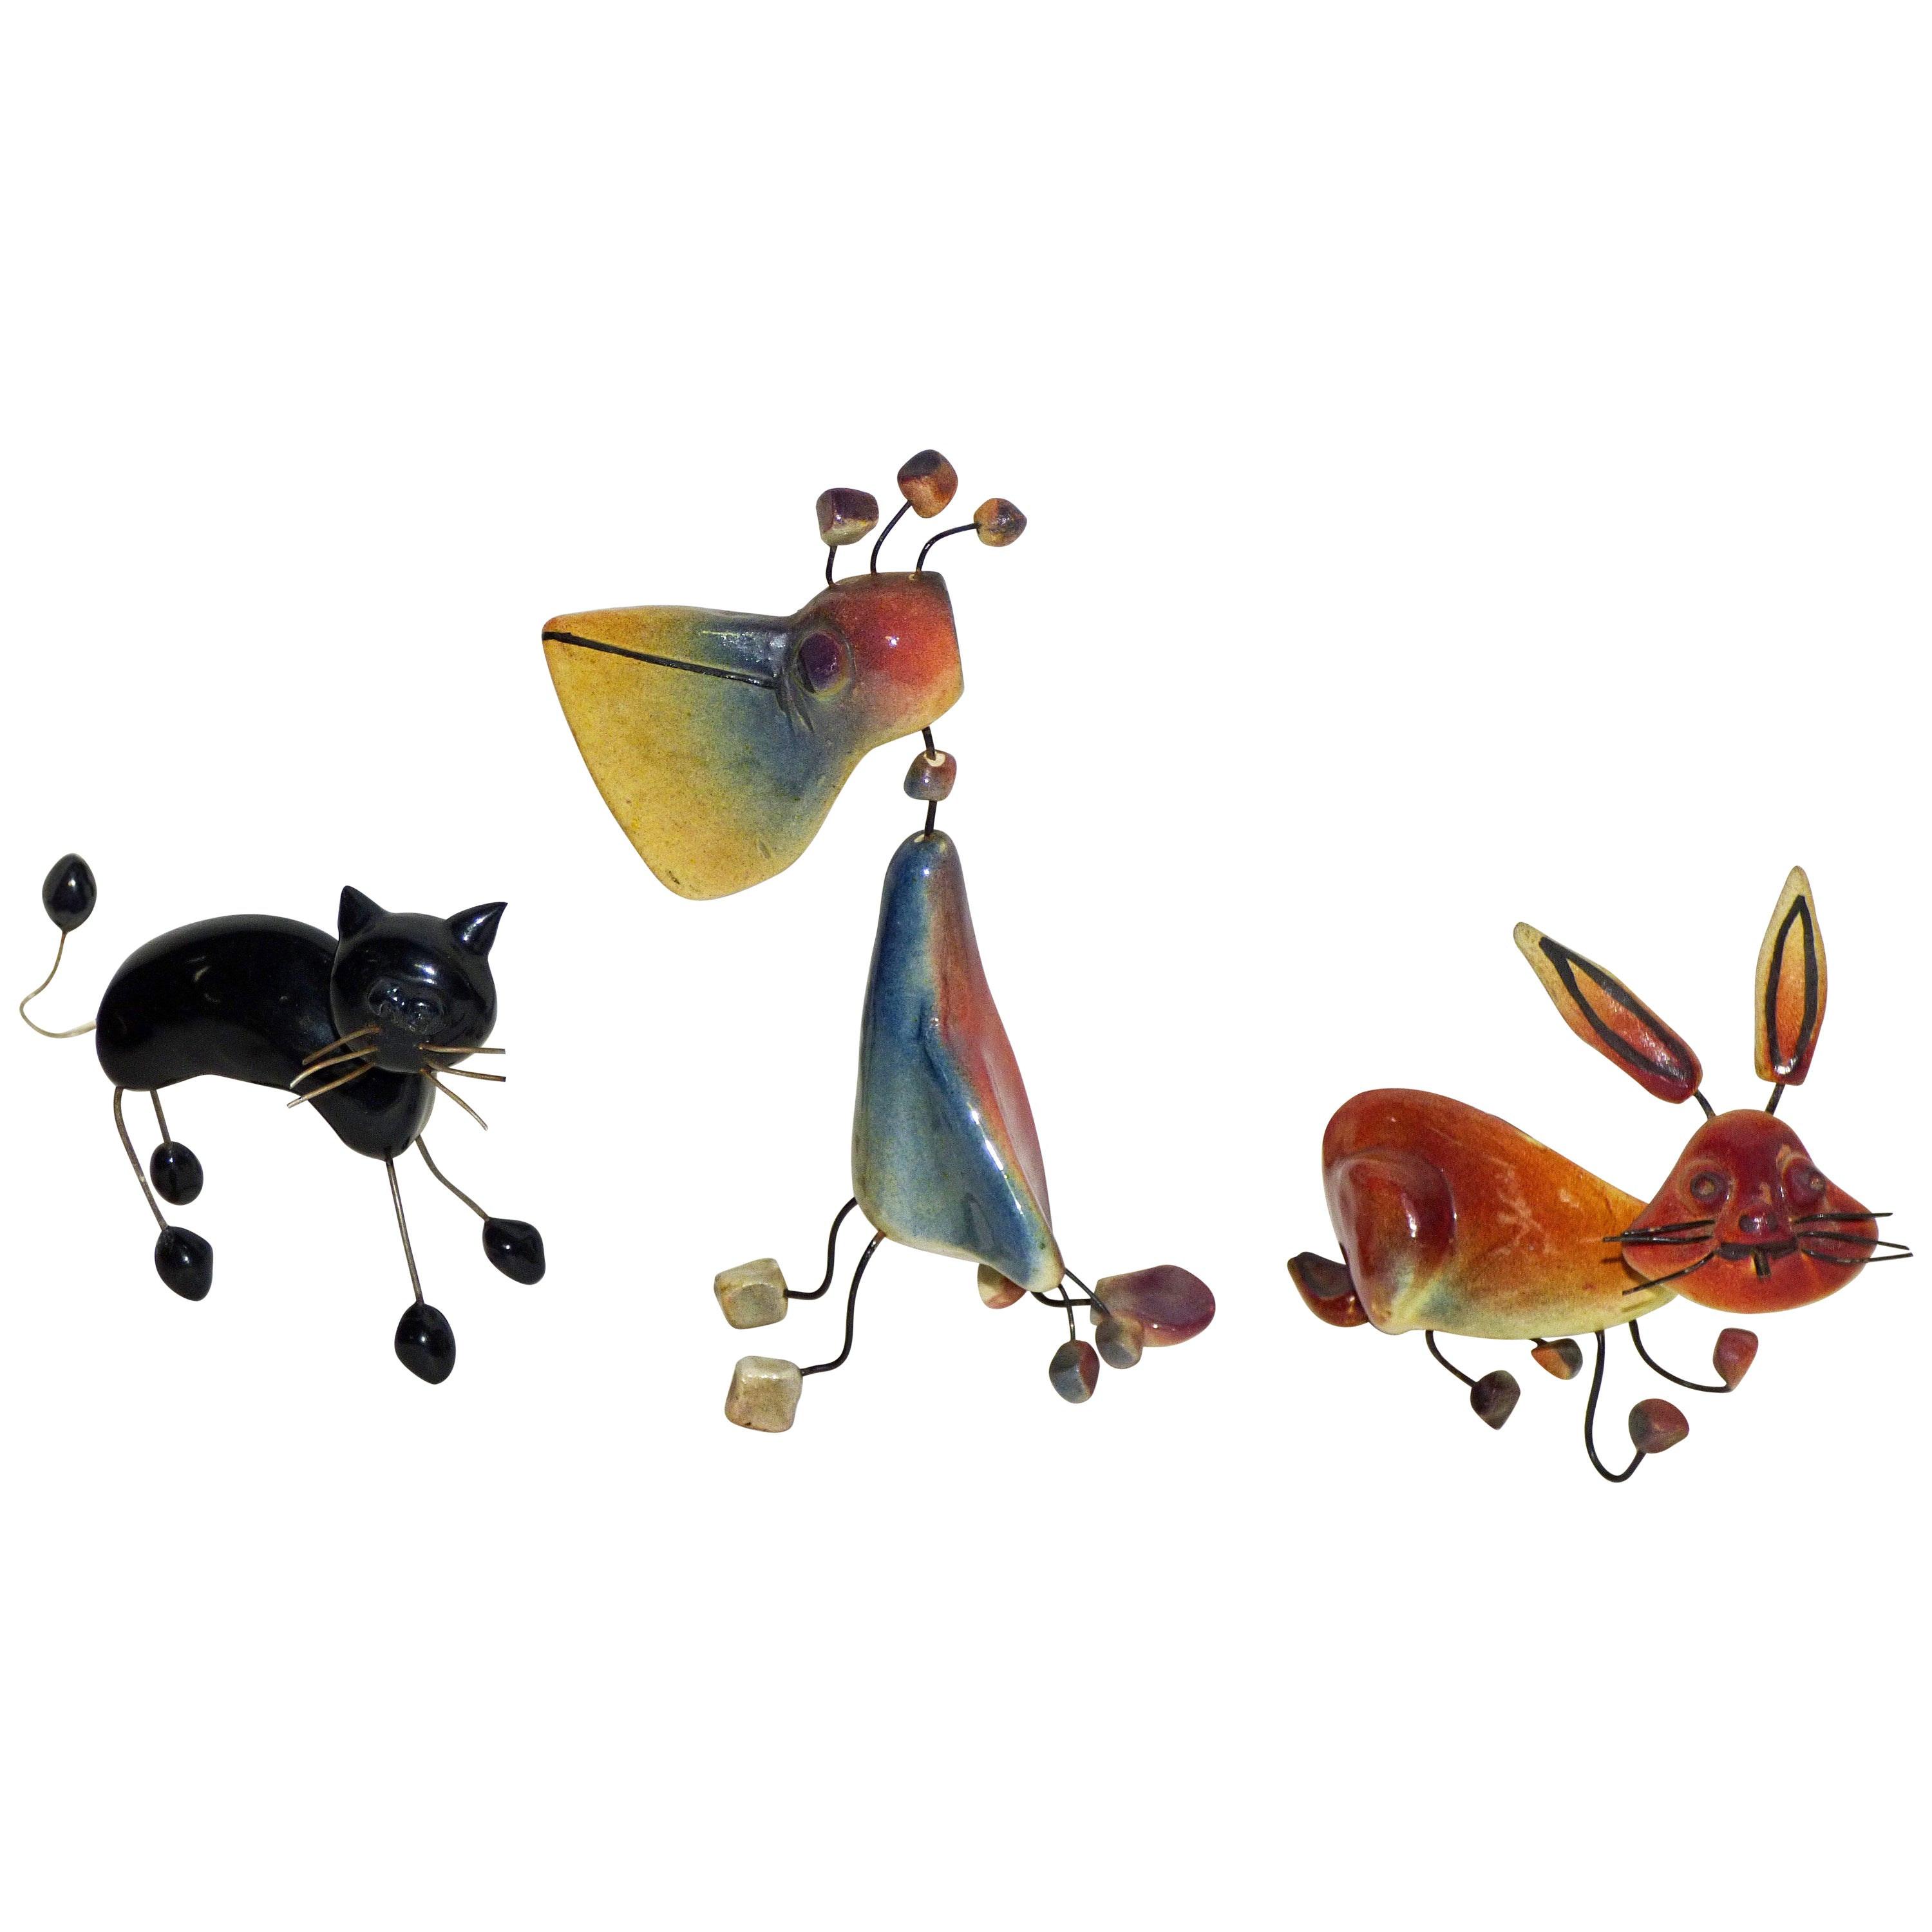 Accolay, Three Animals in Wire and Ceramic Cat, Pelican and Rabbit, Signed